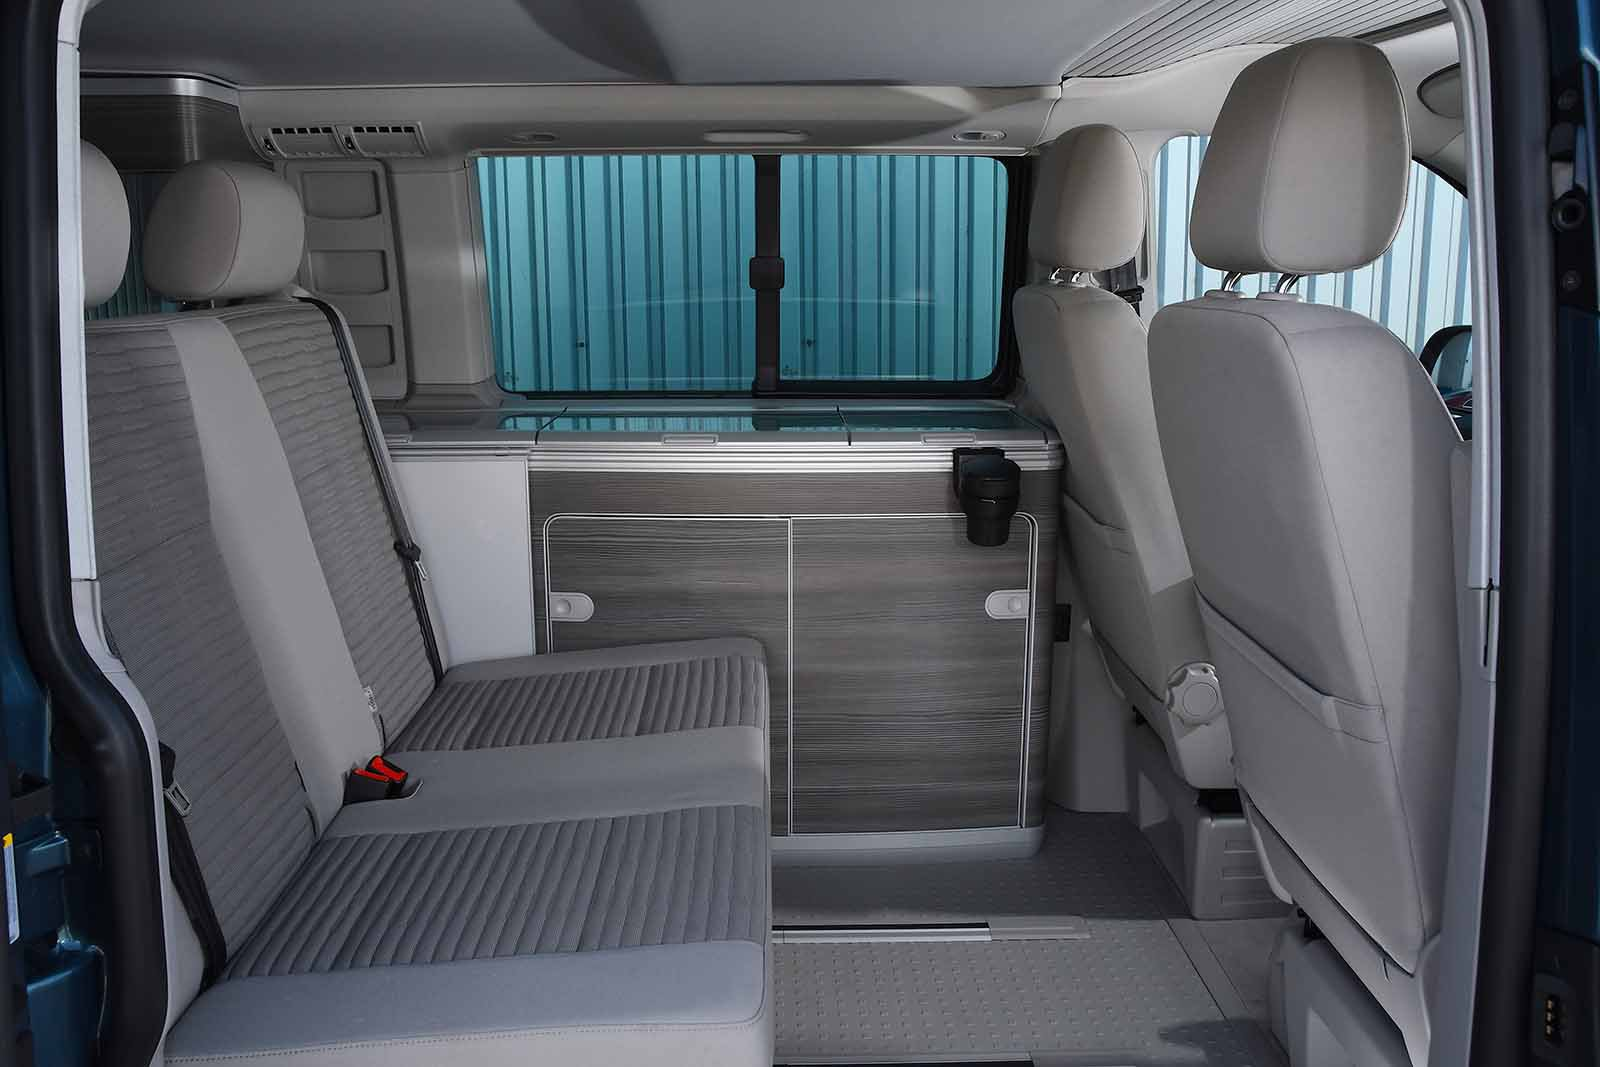 Volkswagen California 2019 RHD rear seats